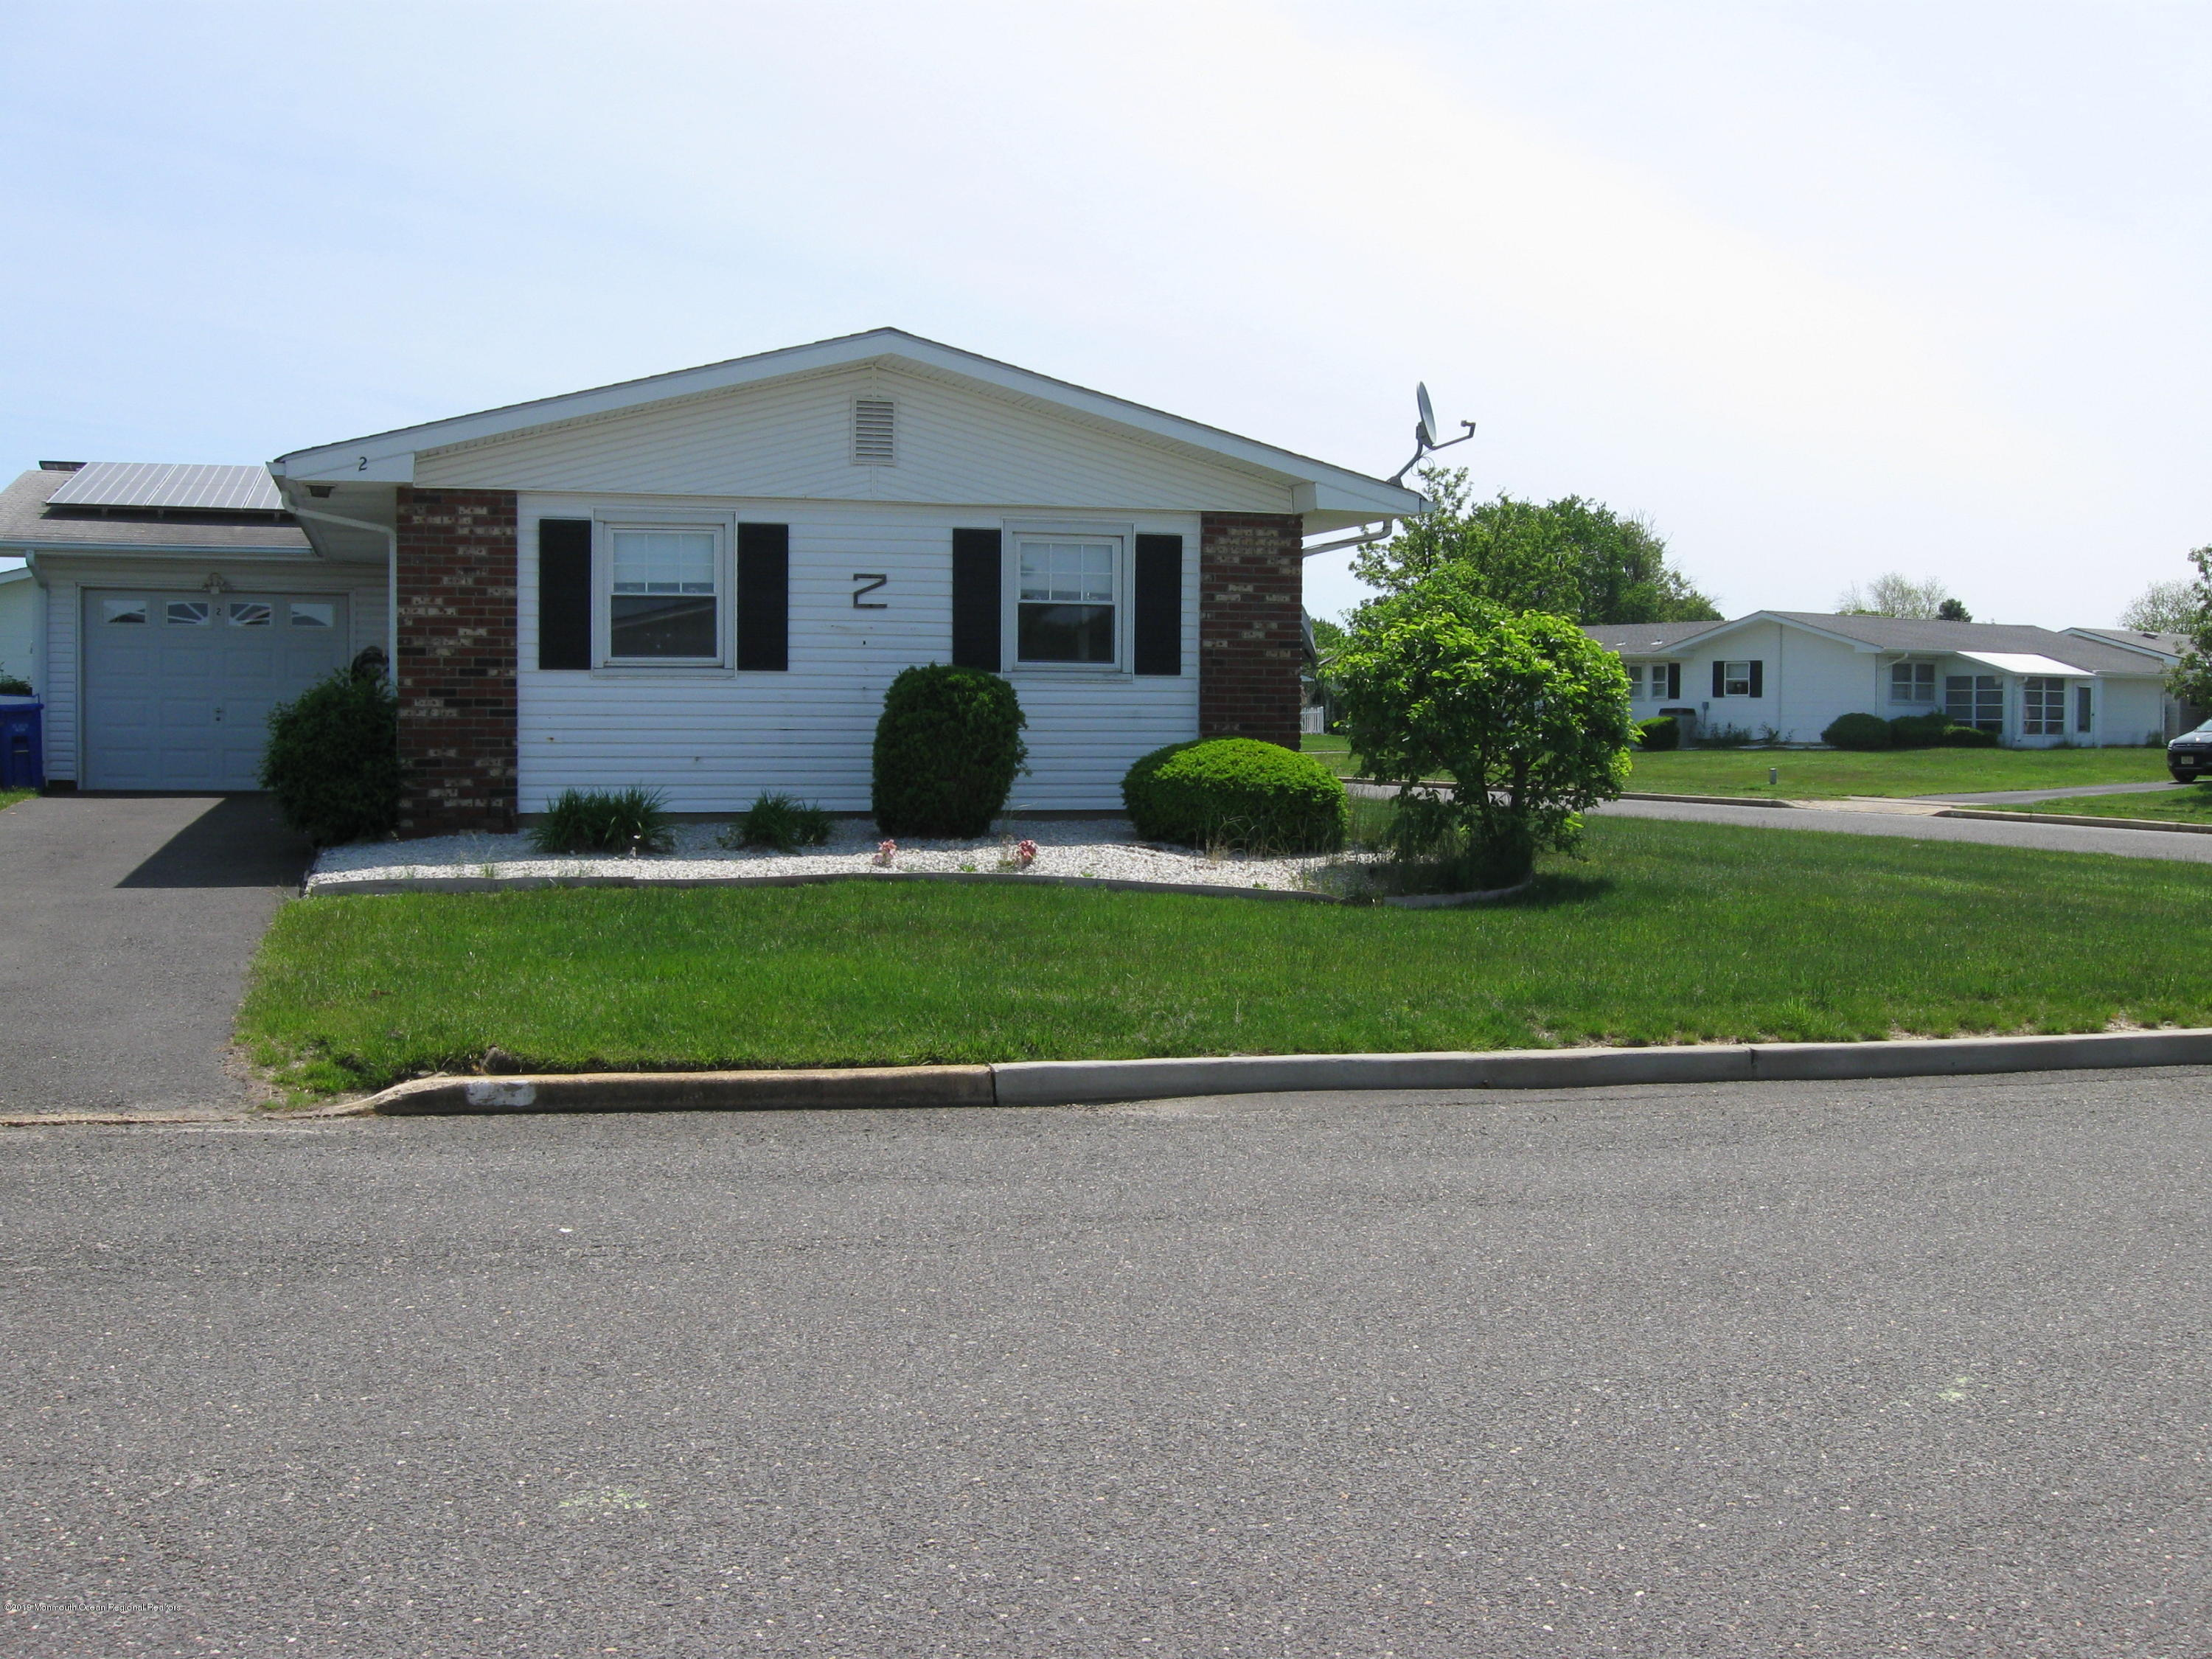 2 Higgins Court Brick NJ 08724